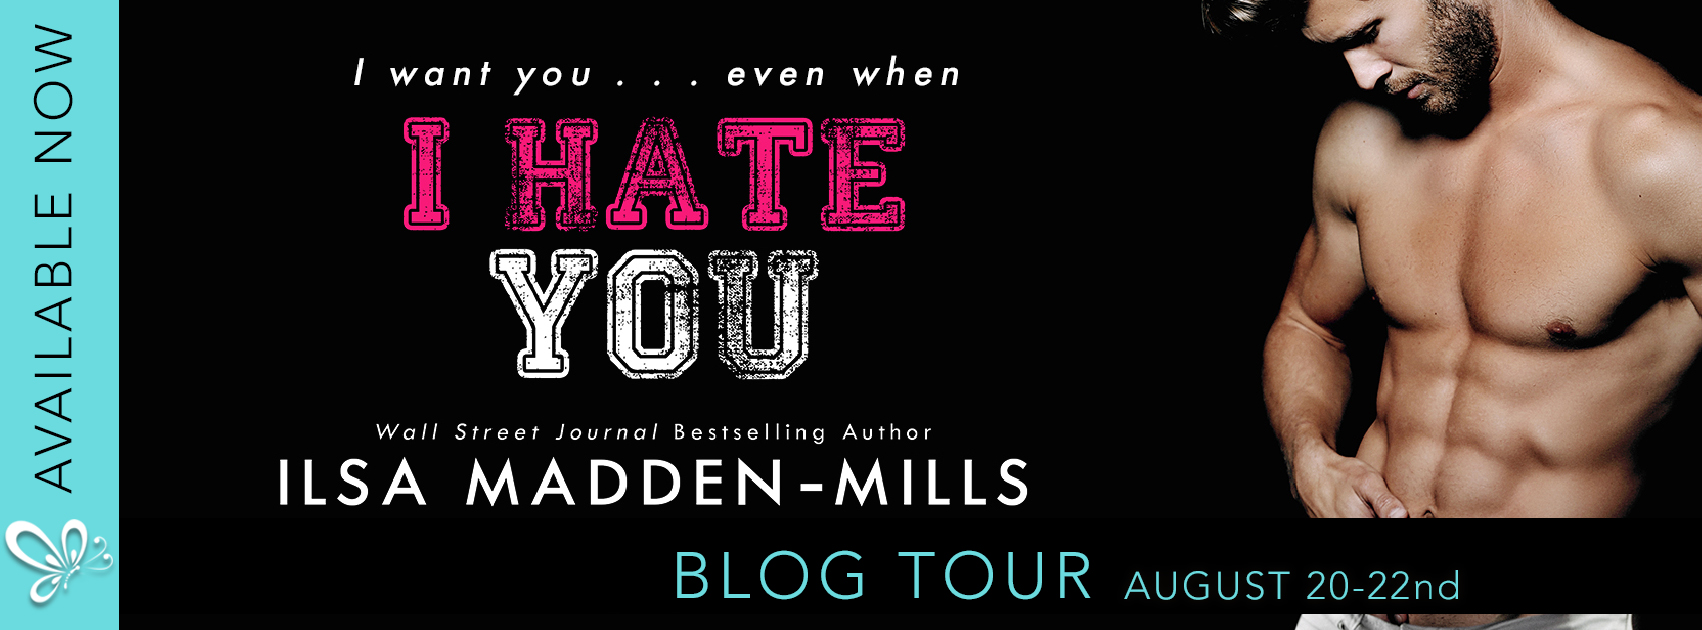 I HATE YOU BLOG TOUR BANNER.jpg